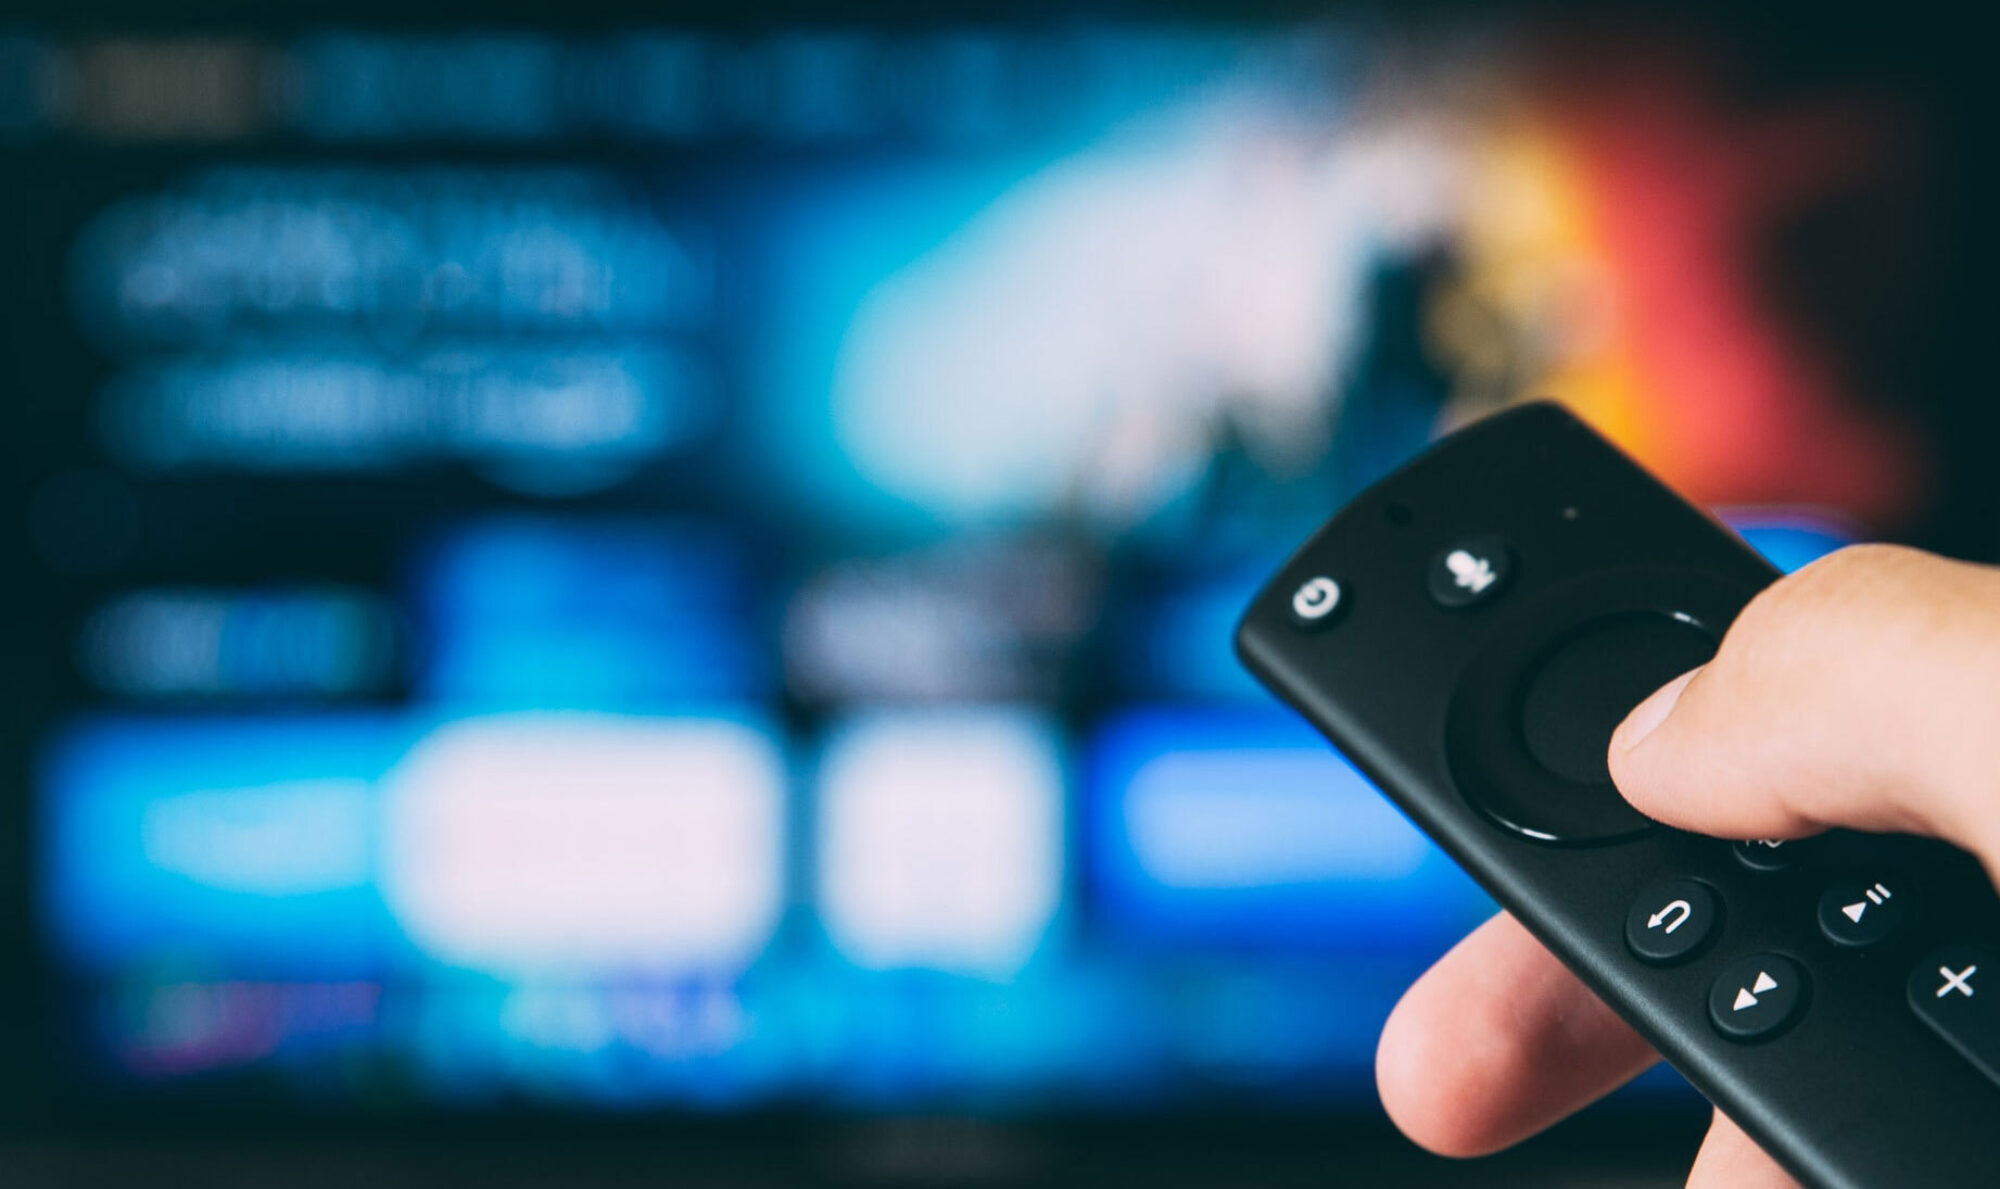 Hand holding a remote control with a blurred video on demand user interface in the background